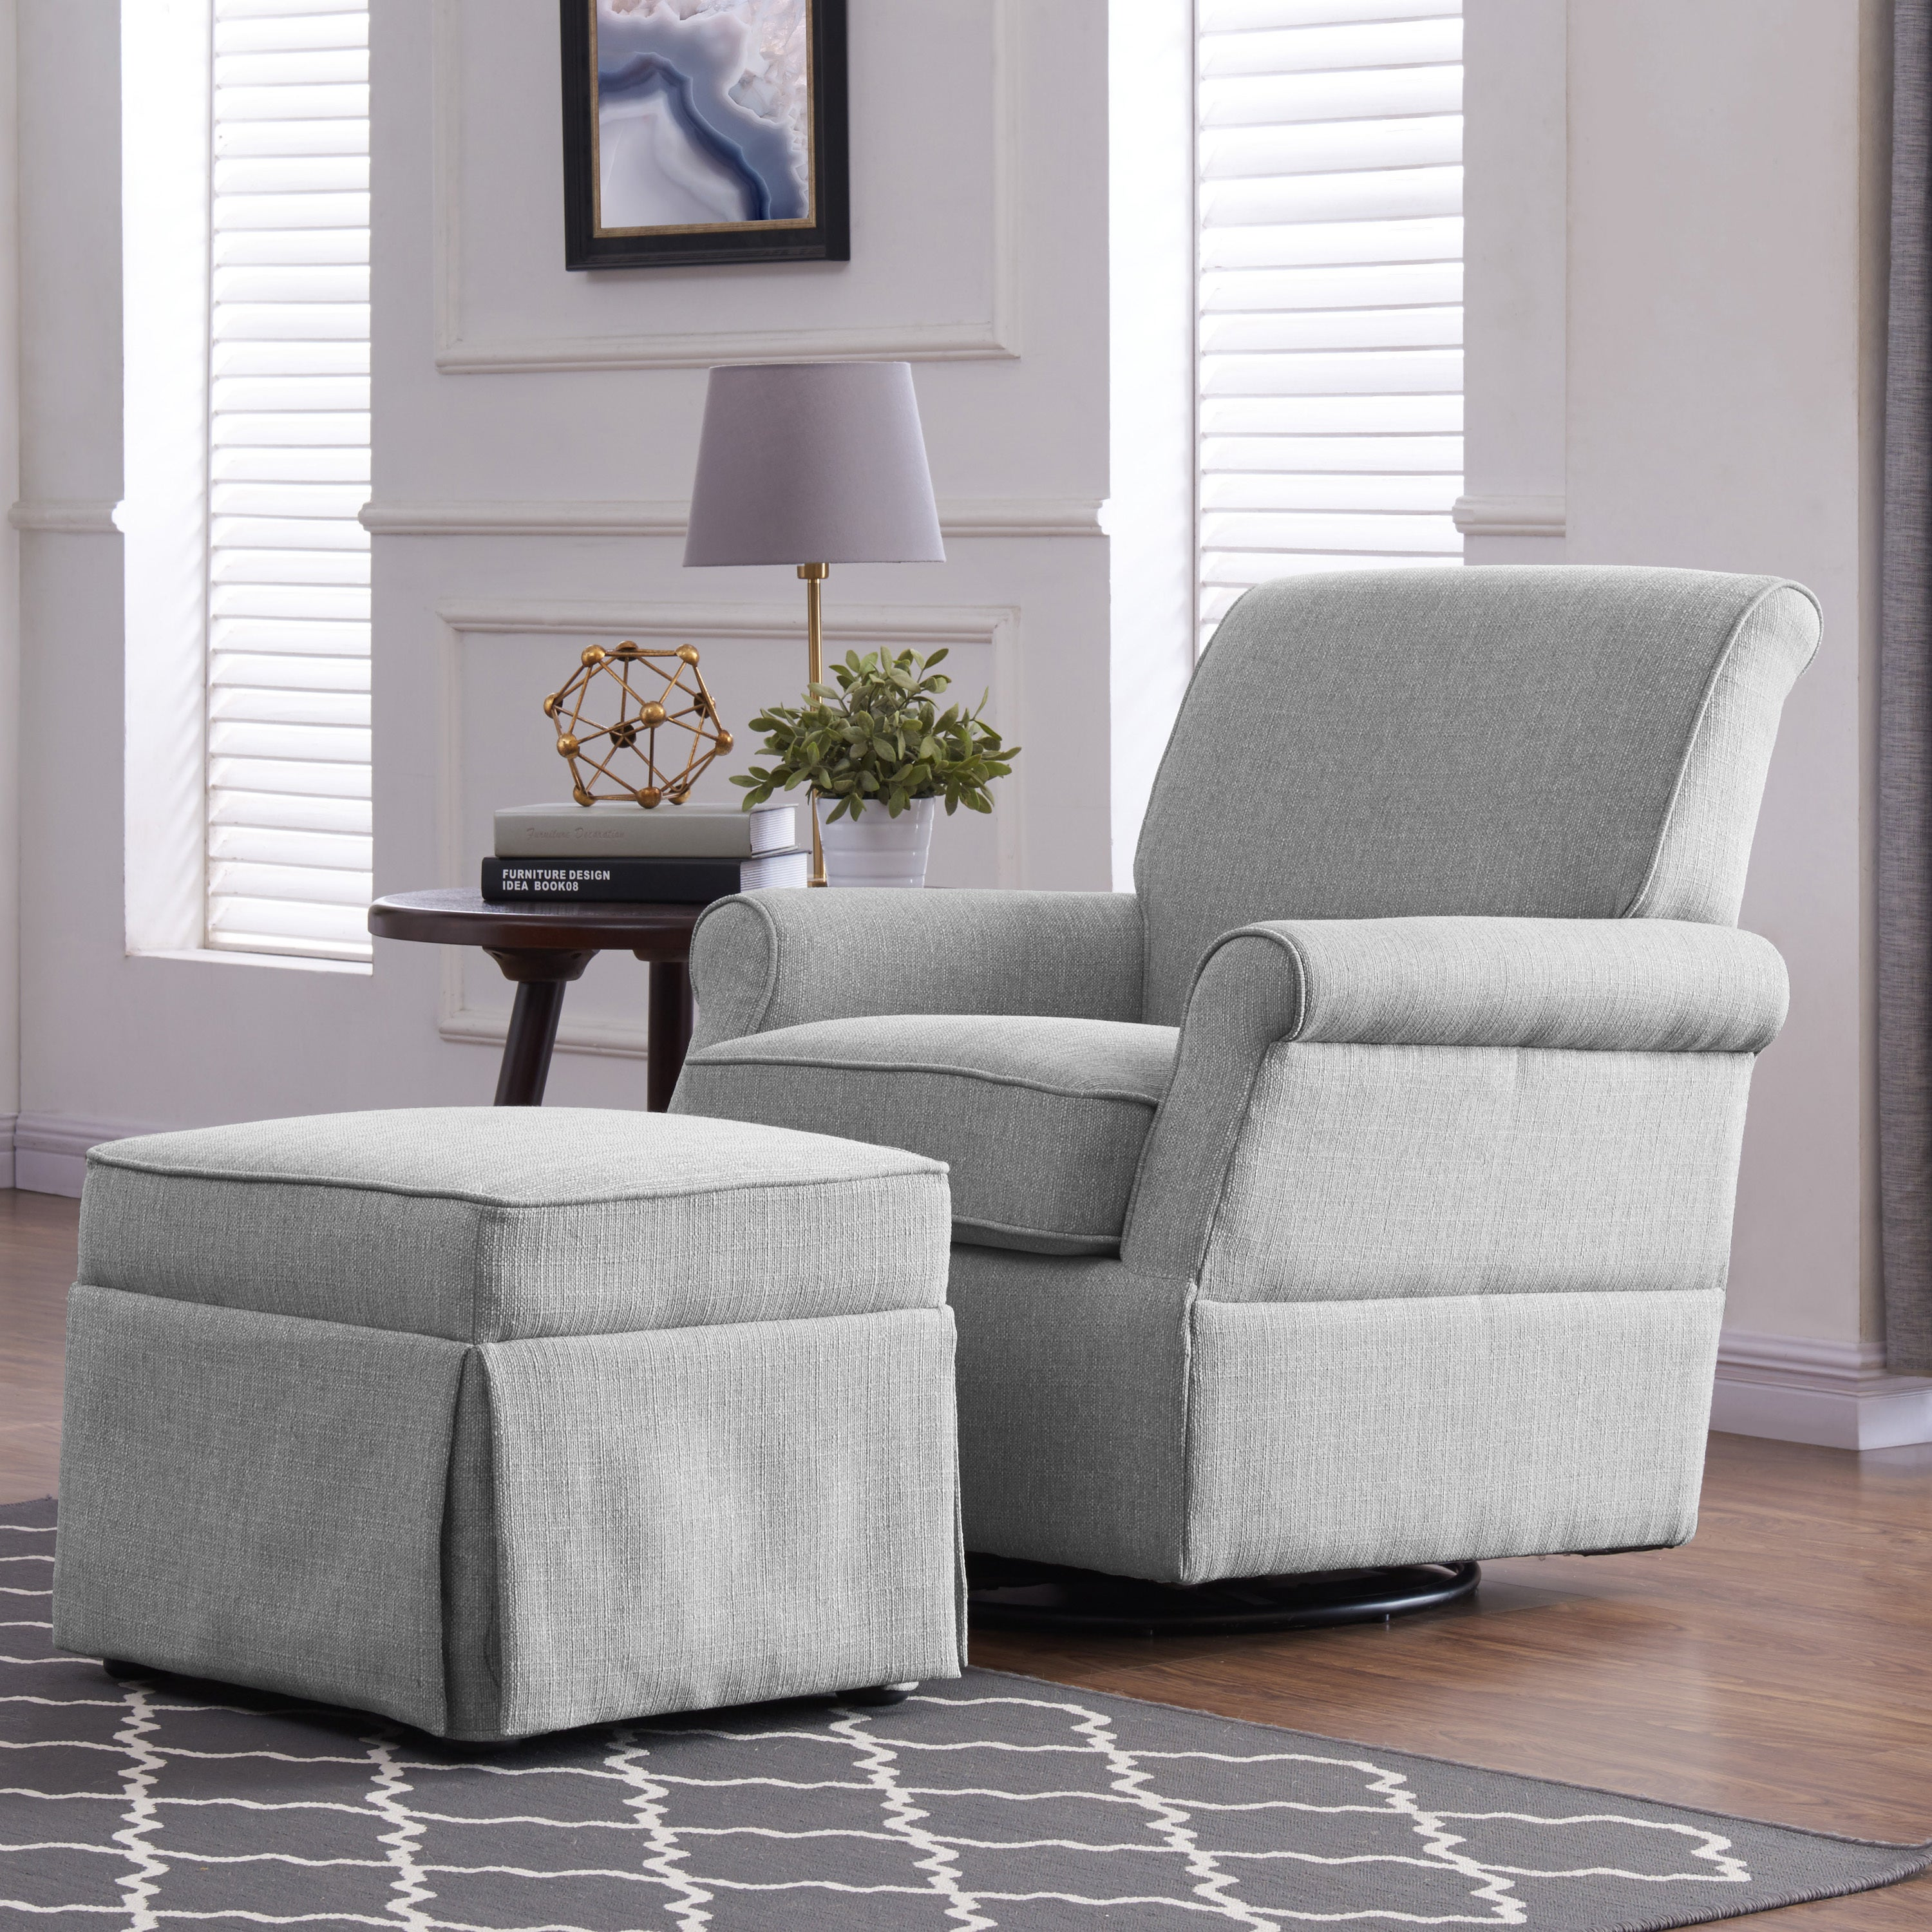 Shop handy living dove grey linen wood frame swivel glider arm chair and ottoman on sale free shipping today overstock com 18680091